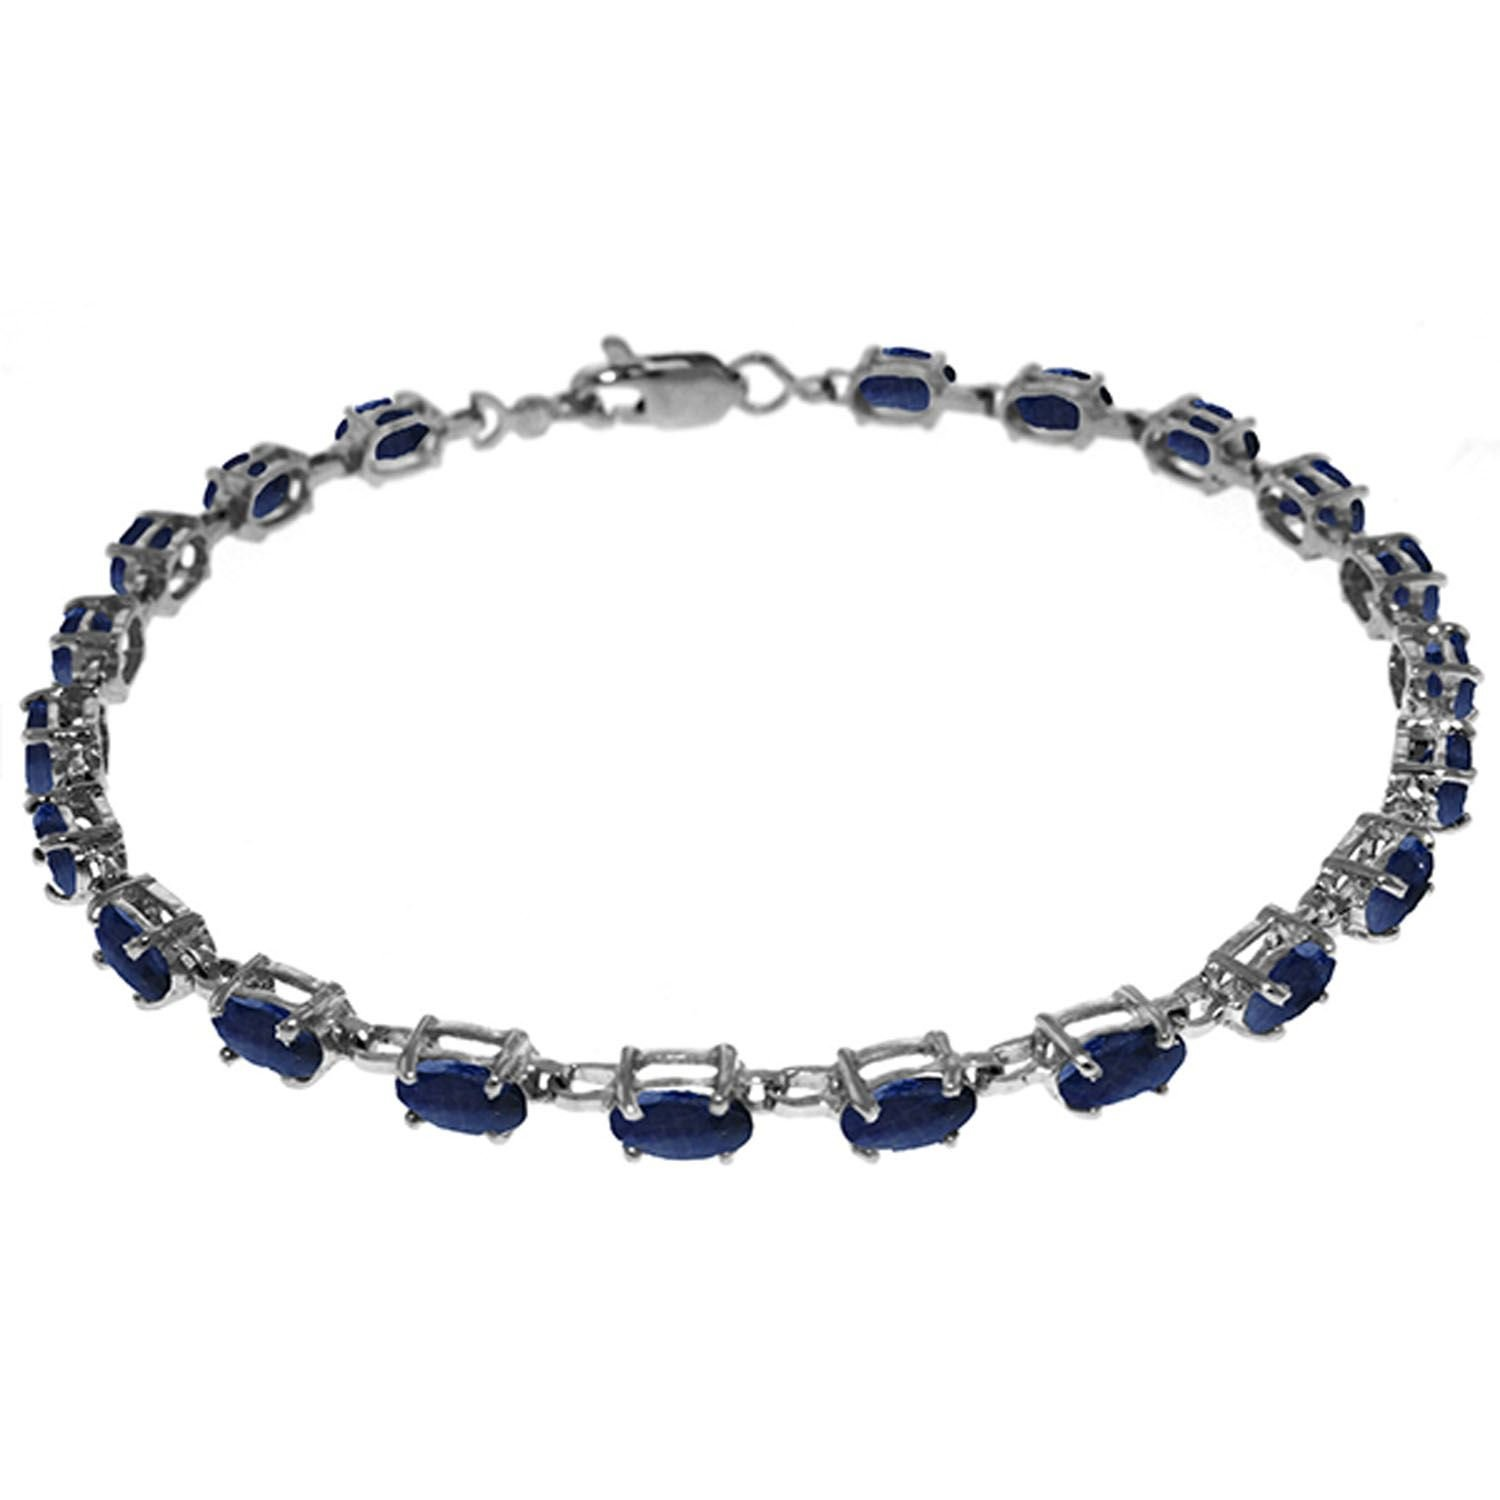 ALARRI 8 CTW 14K Solid White Gold Tennis Bracelet Natural Sapphire Size 8 Inch Length